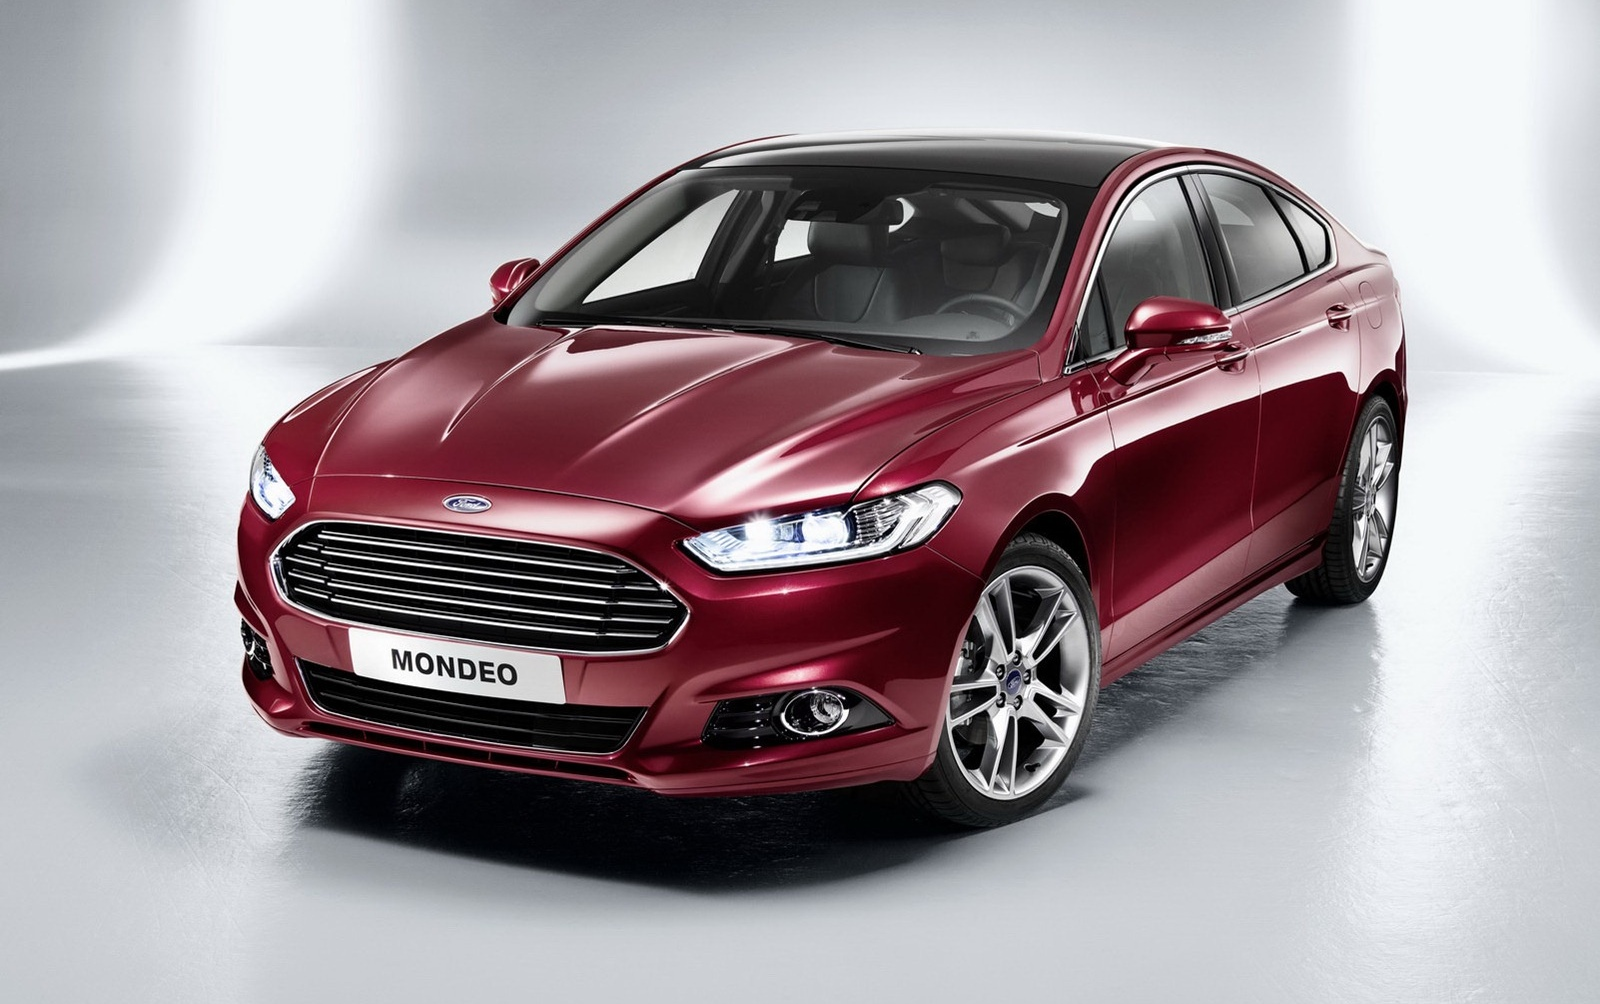 2013 Ford Mondeo 2013 Ford Mondeo   More Fuel Economic and Performance Specific